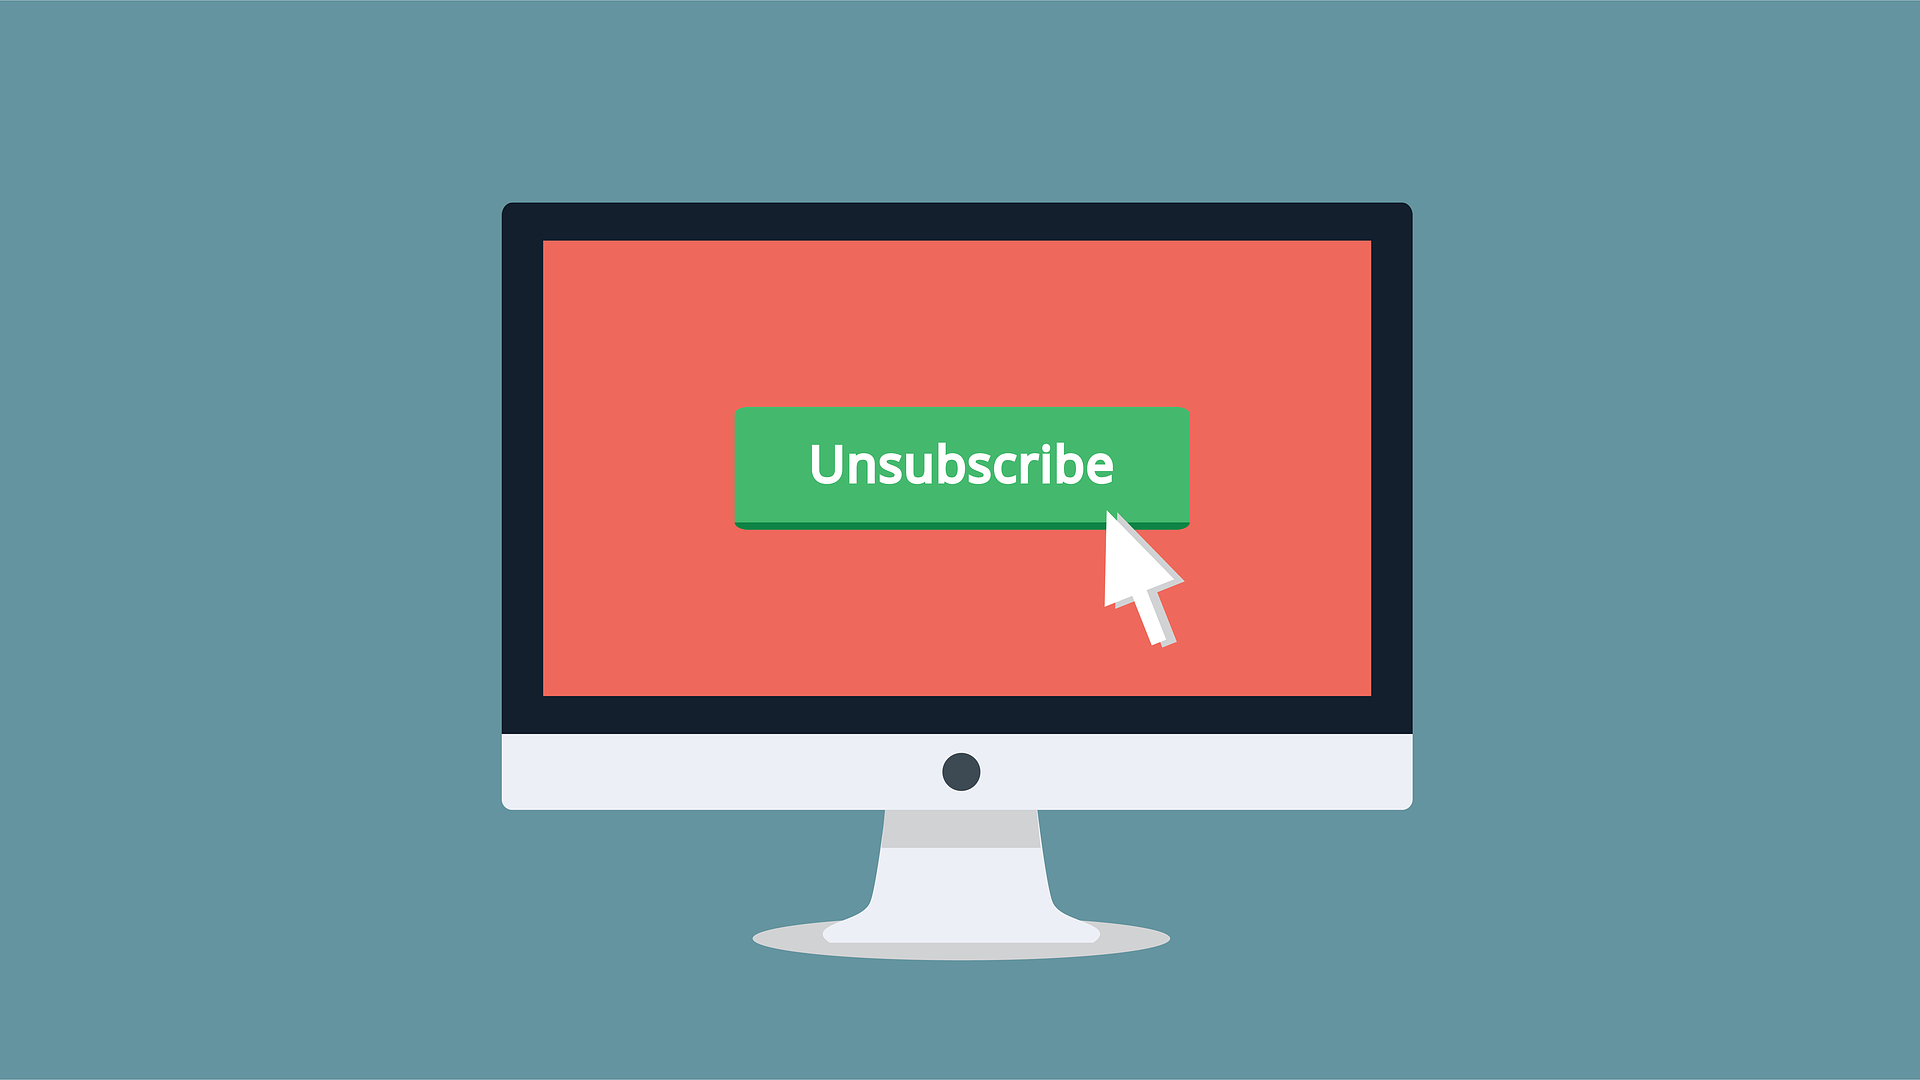 consejos-legales-newsletters-unsuscribe